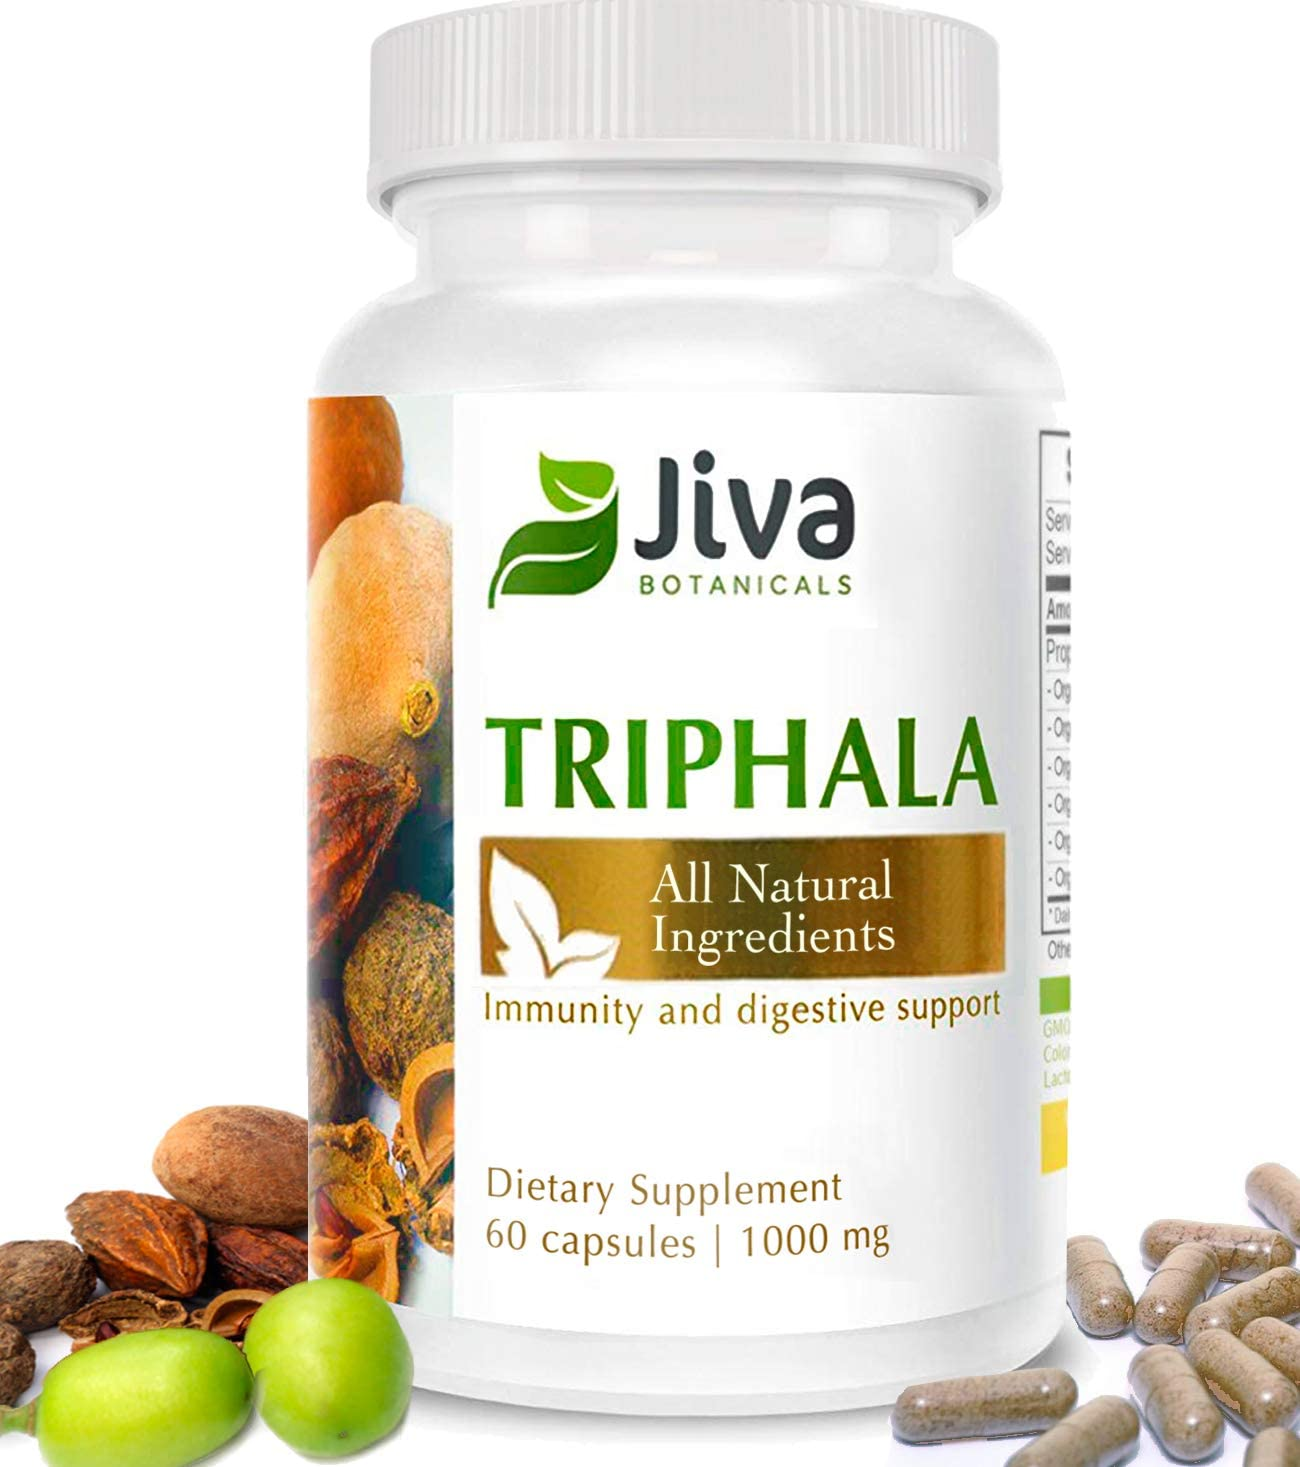 Triphala Capsules 1000mg Extra Strength for Detoxification, Immunity, Digestive Support Optimized Formula Amalaki Amla , Bibhitaki and Haritaki Triphala Powder Plus Extract – by Jiva Botanical